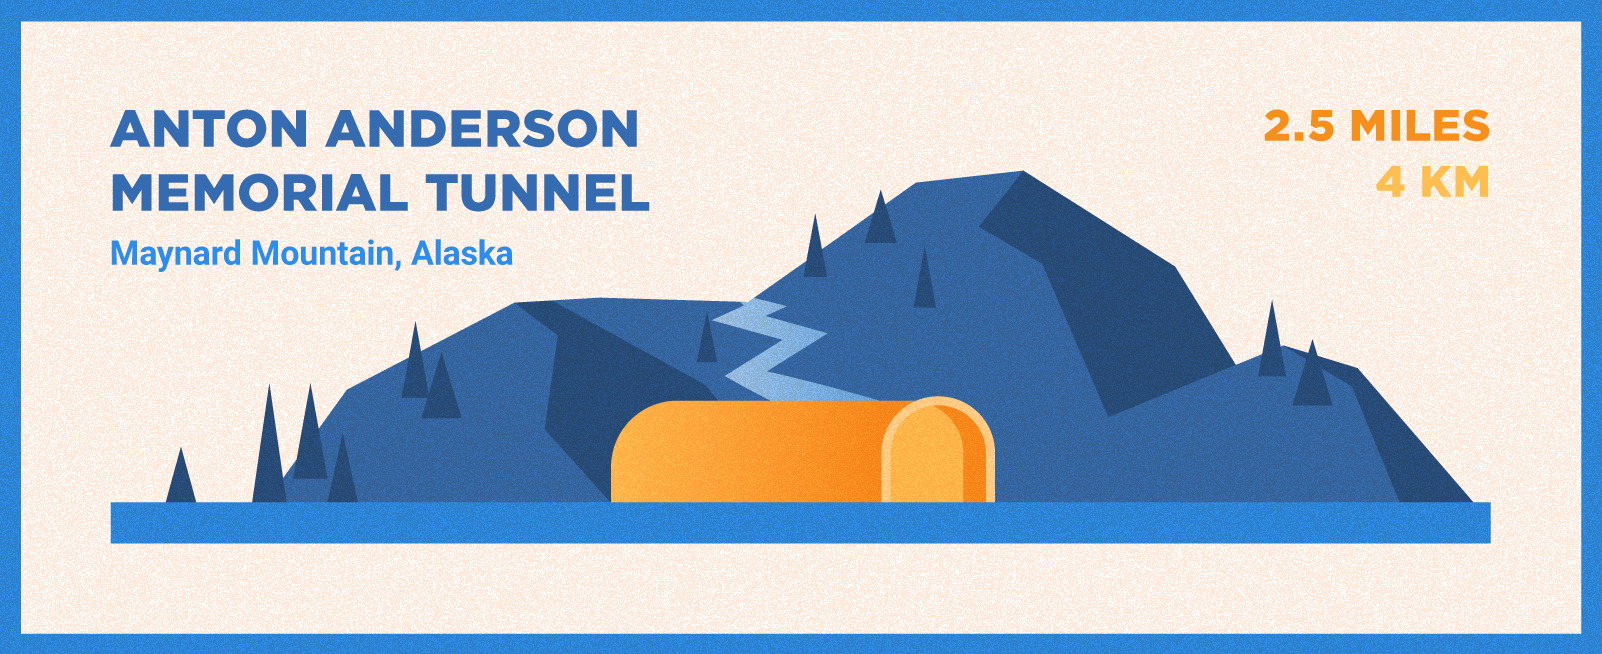 Anton Anderson Memorial Tunnel is 2.5 miles long and located in Maynard Mountain, Alaska.